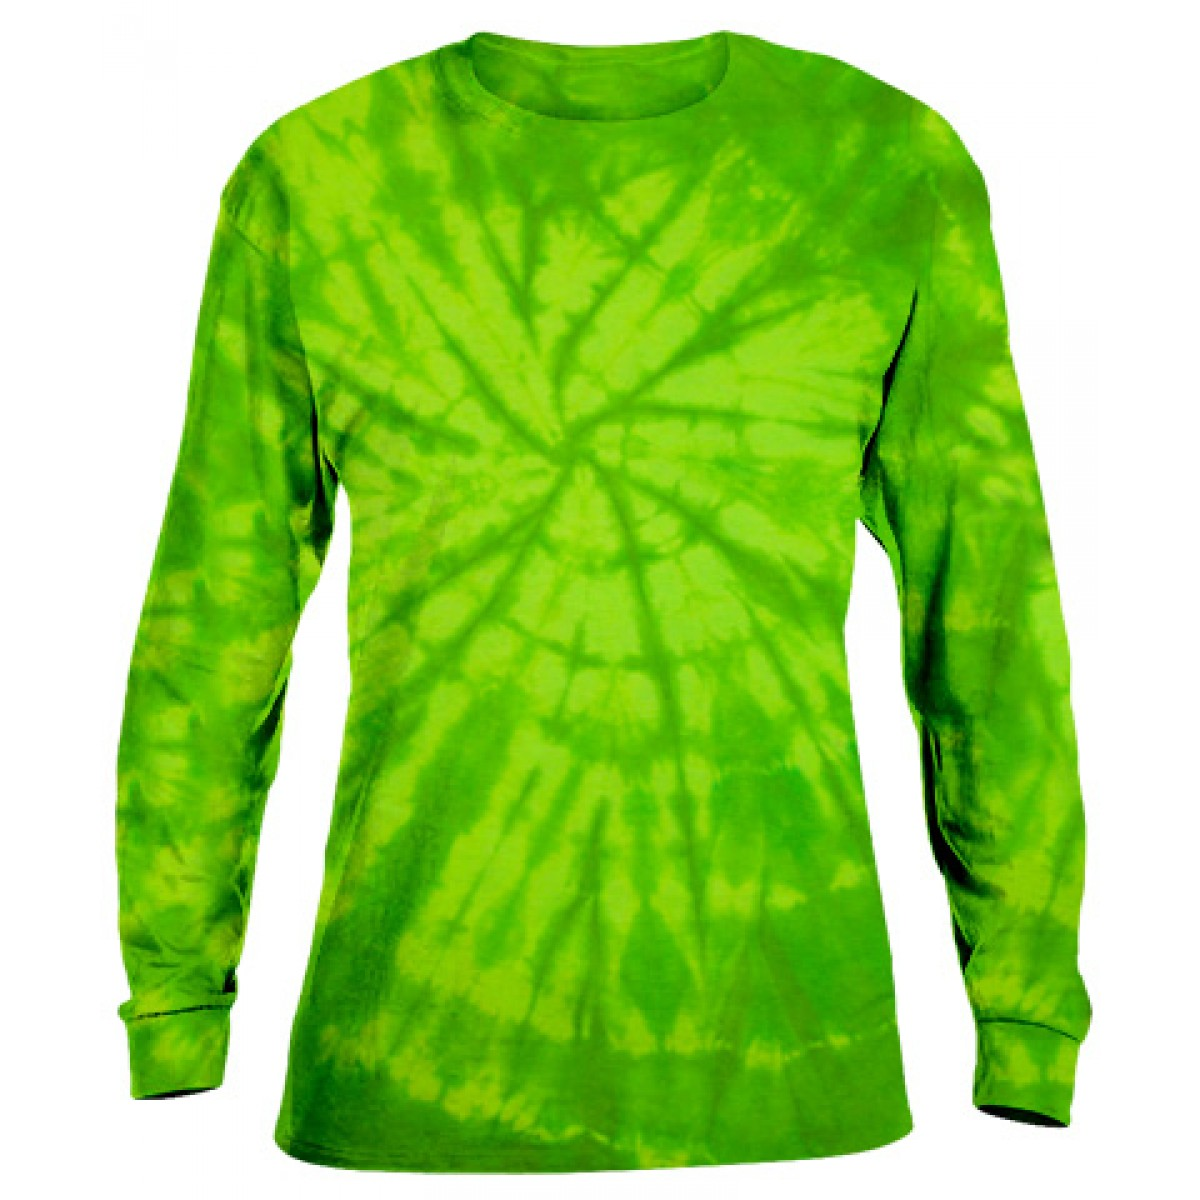 Tie-Dye Long Sleeve Shirt -Lime Green-S